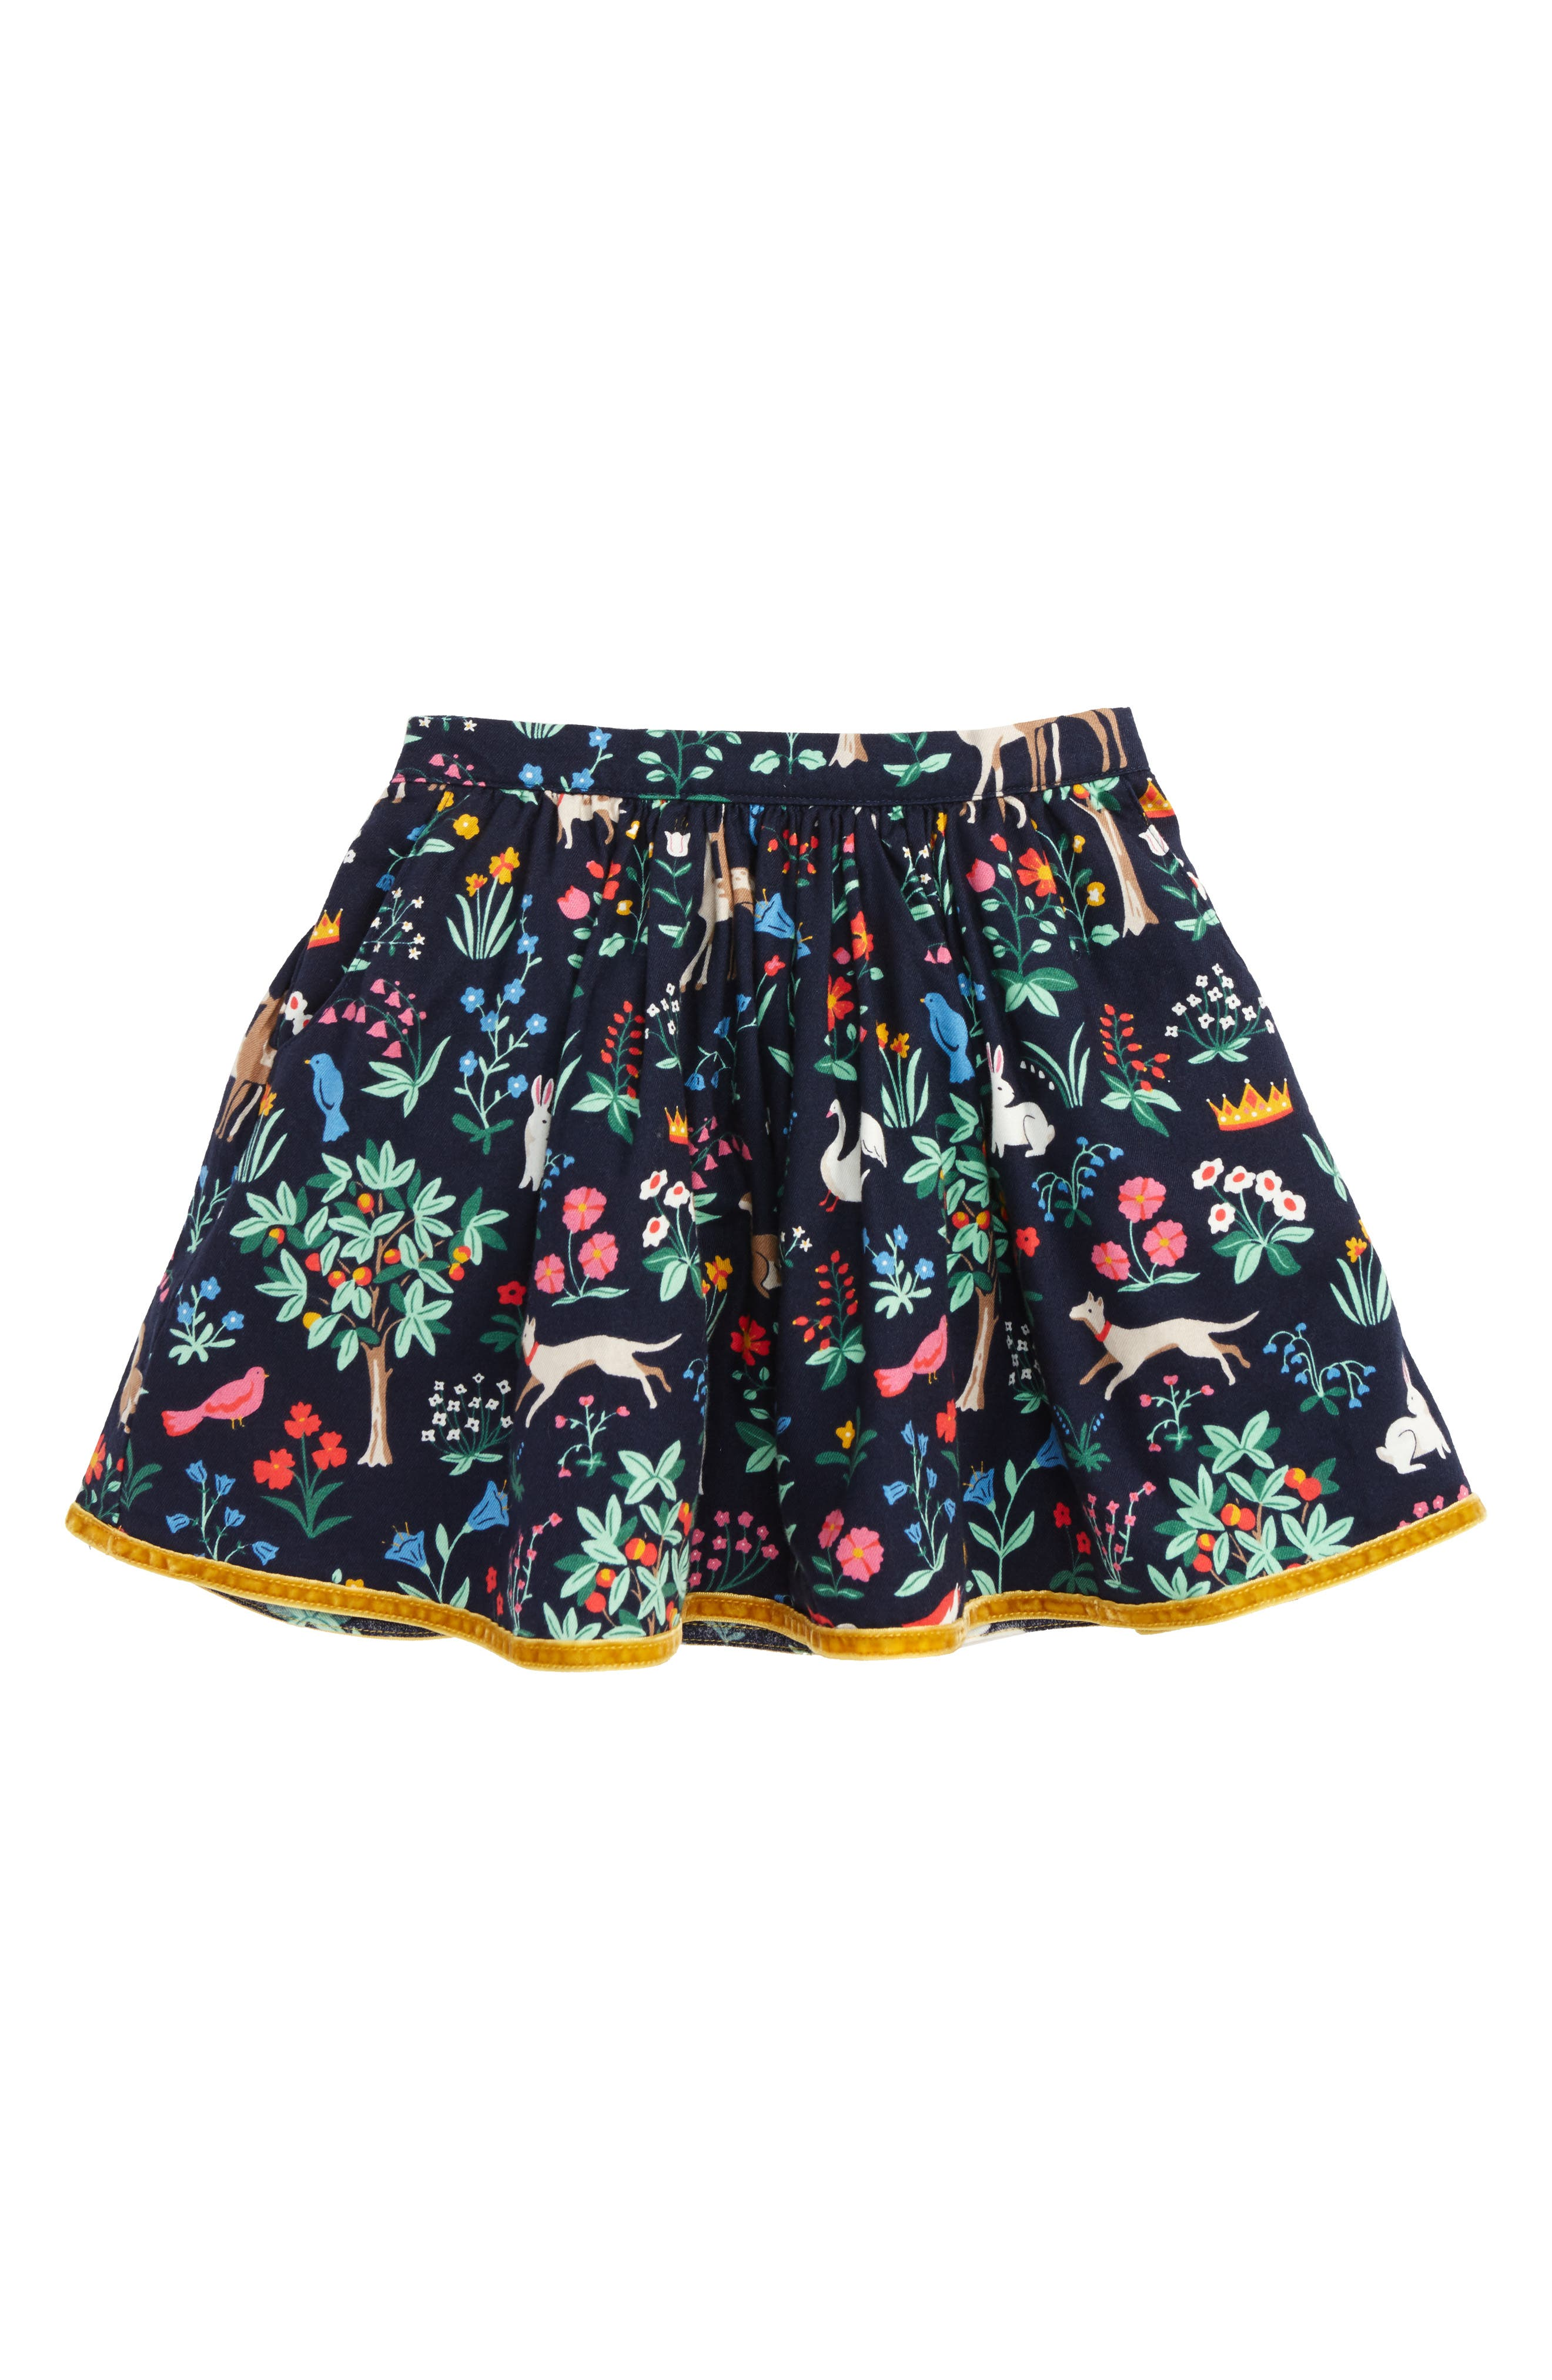 Pretty Printed Skirt,                         Main,                         color, School Navy Tapestry